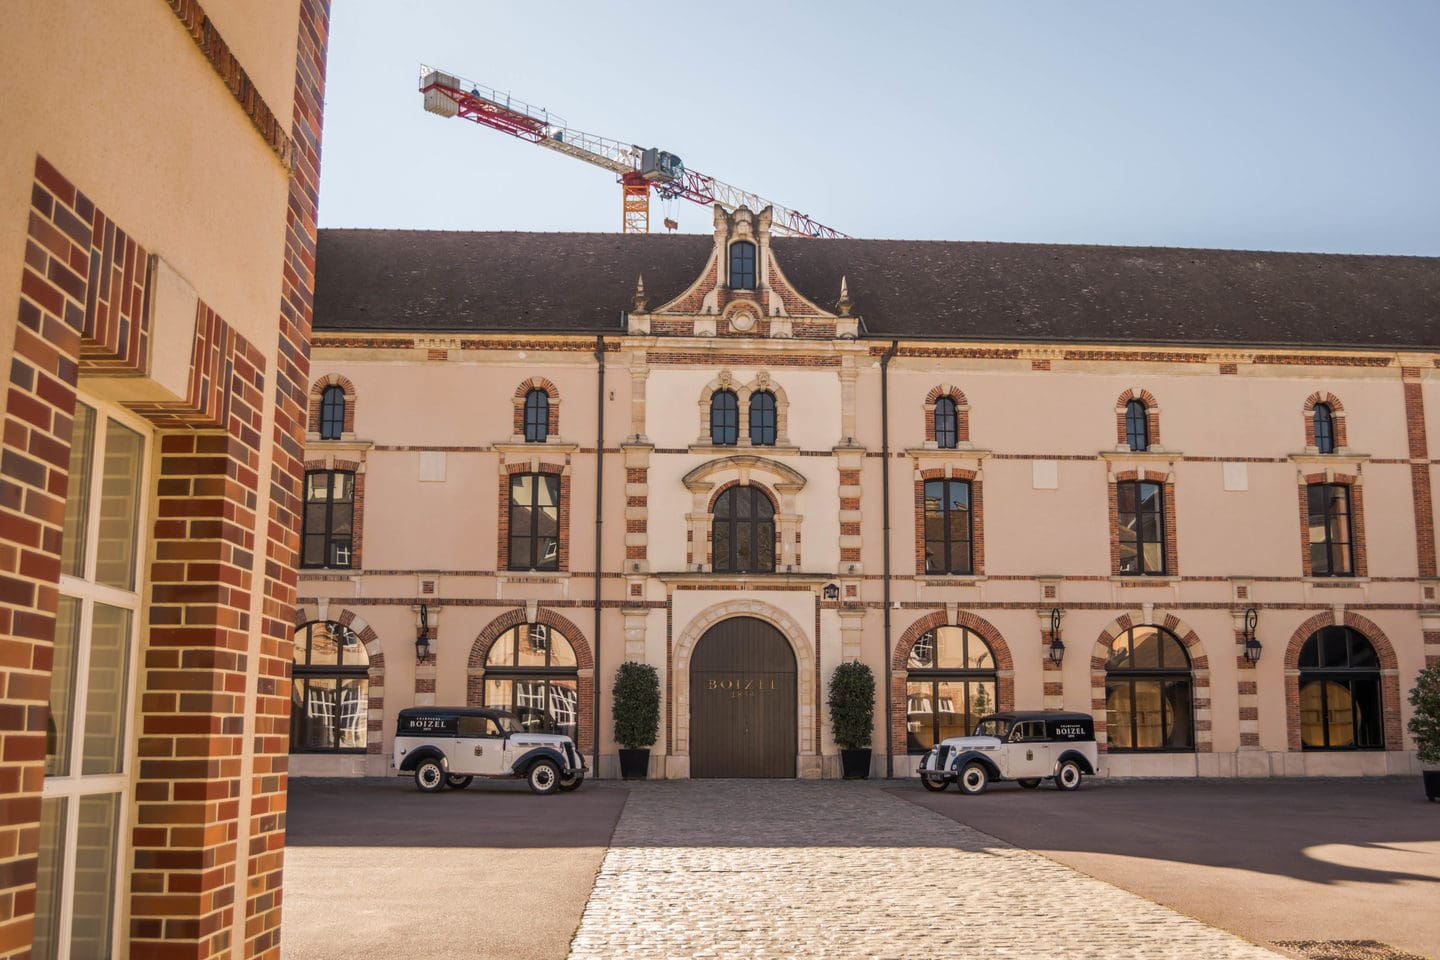 Visit the Maison Boizel One of the most beautiful cellars in Epernay